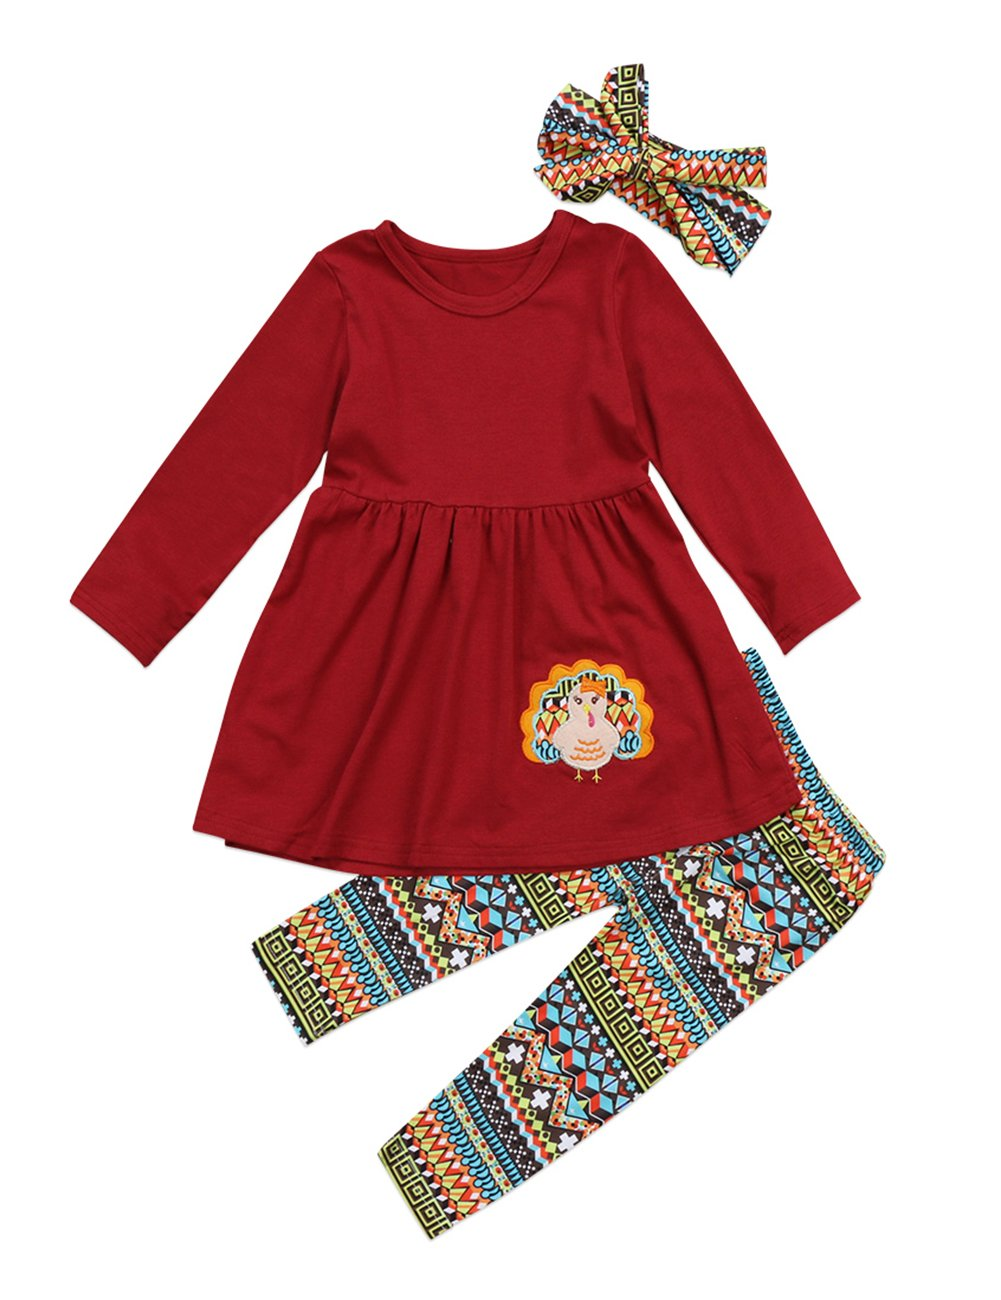 Thanksgiving Day Clothing Sets Kids Baby Girls Long Sleeve Tops Dress+ Turkey Legging Outfit